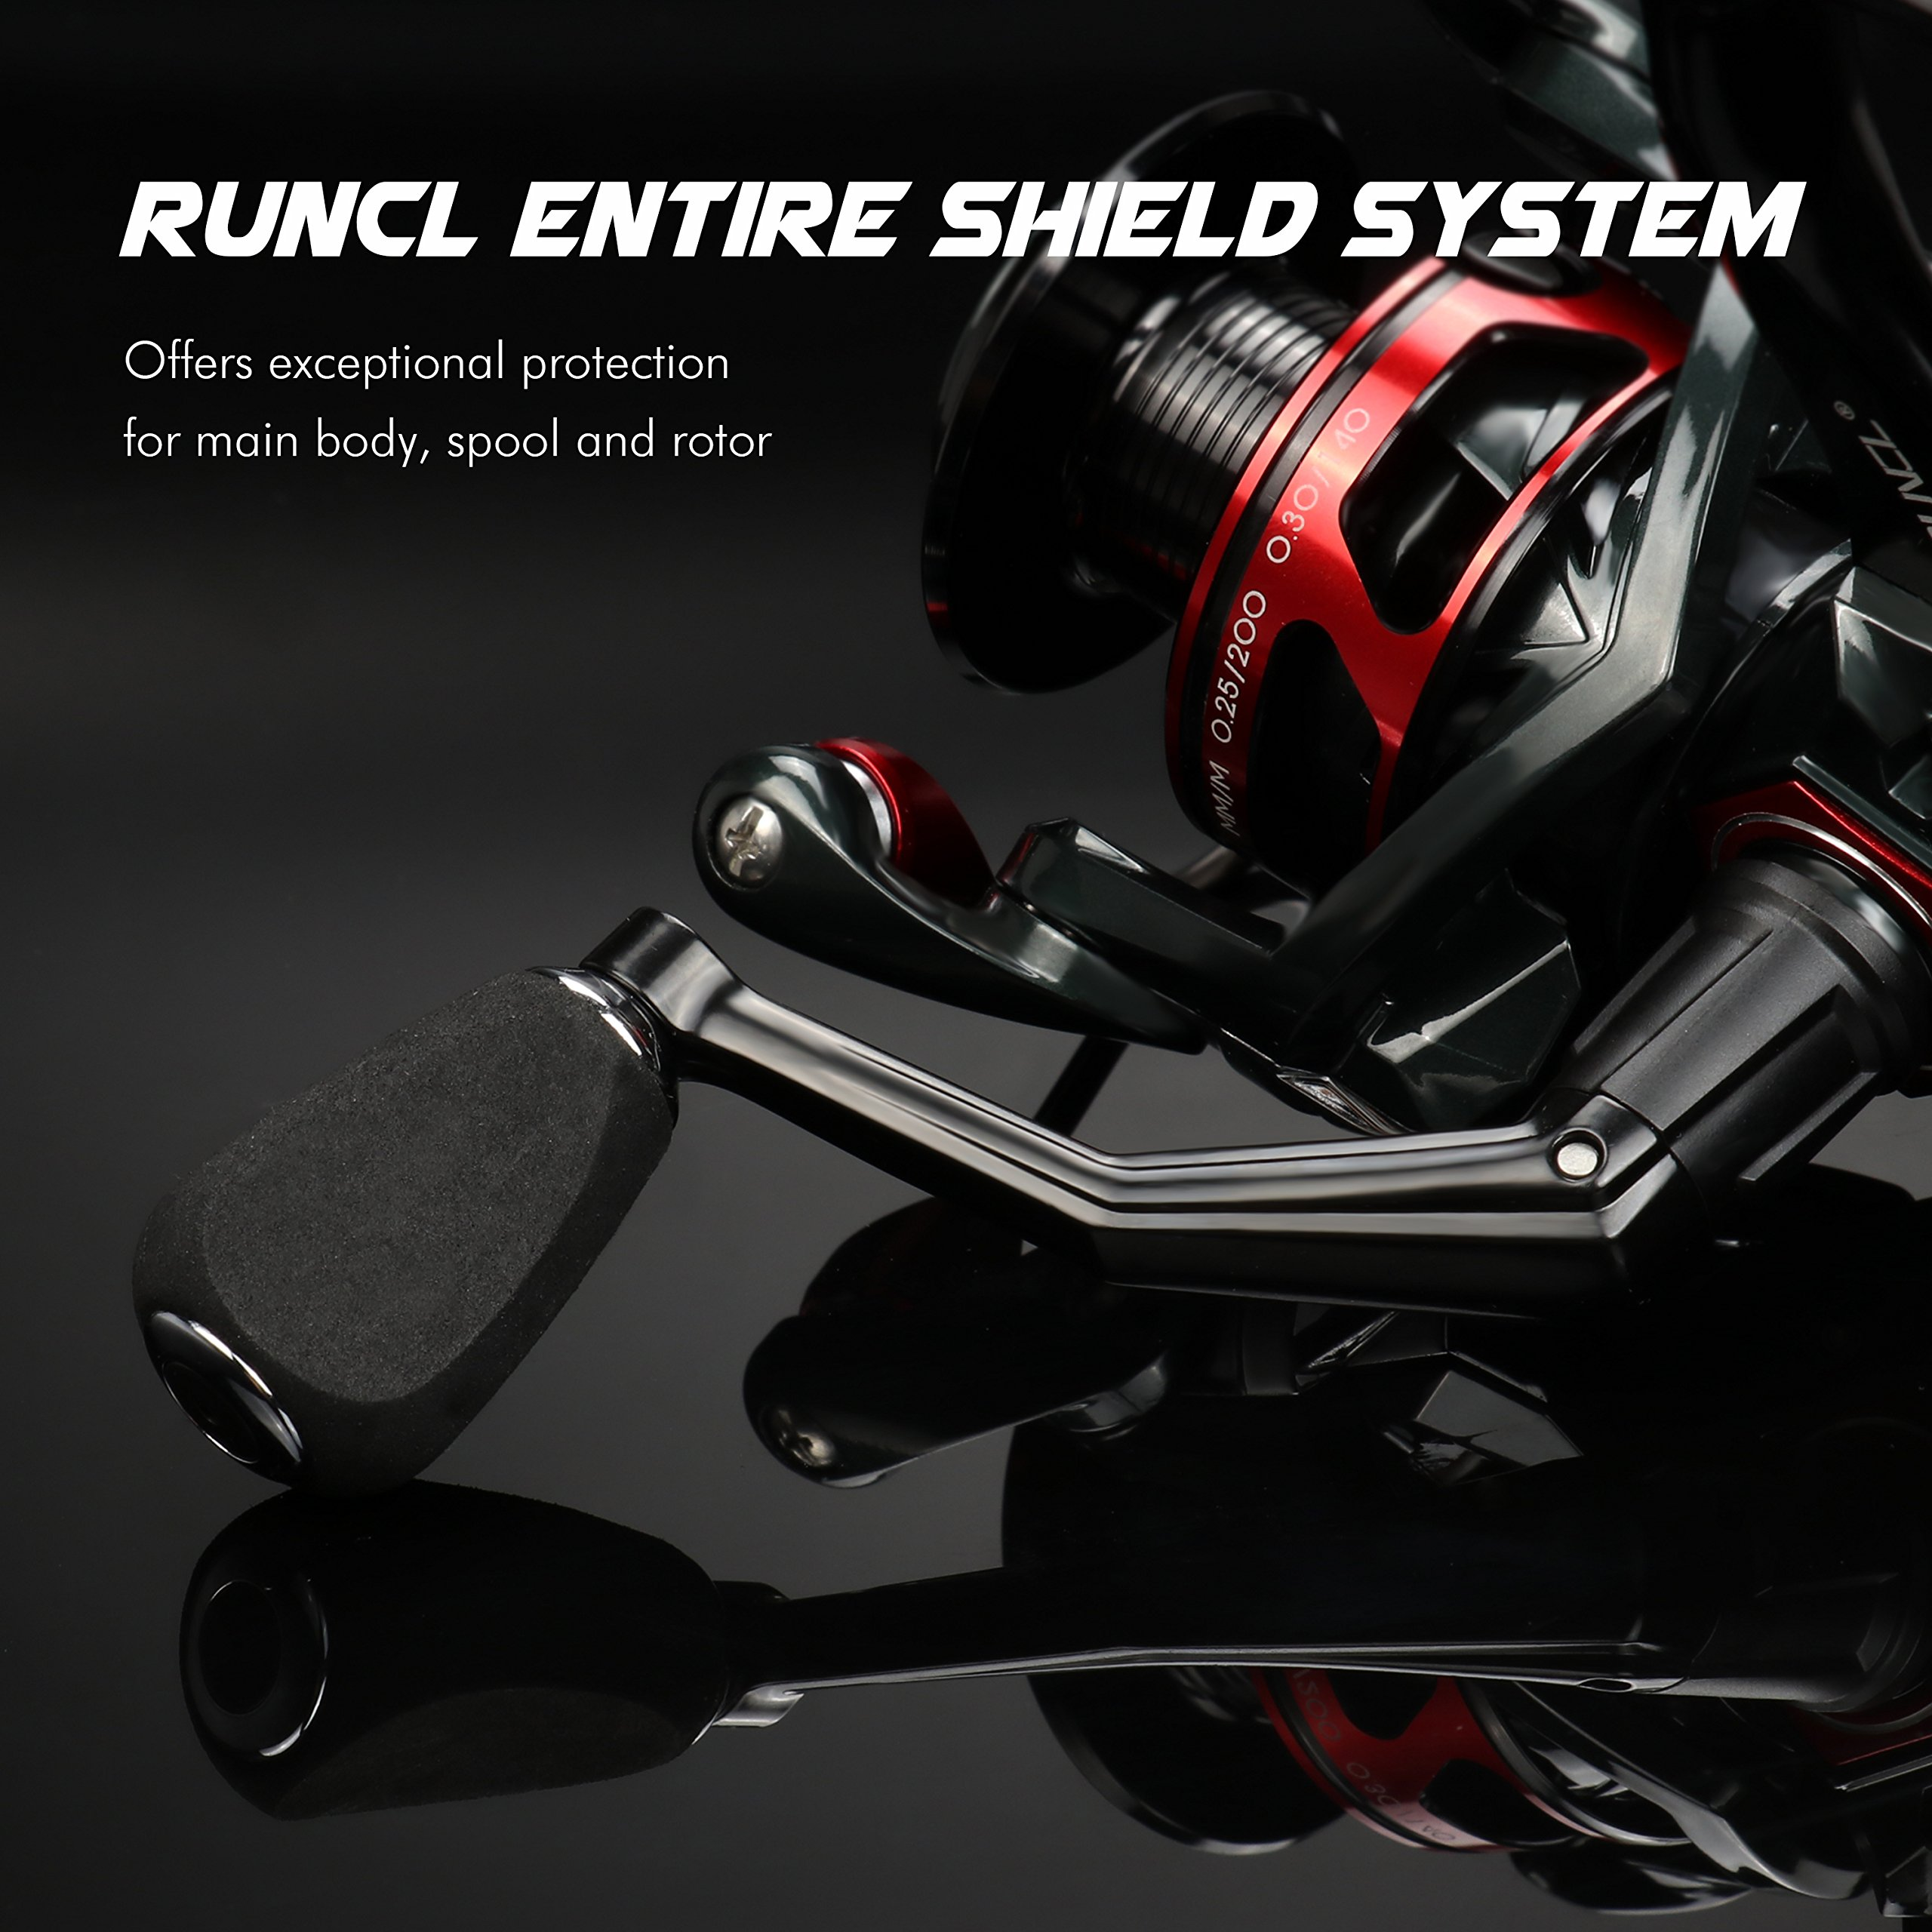 RUNCL Spinning Reel Titan I, Fishing Reel with Full Metal Body, Max Drag 44LB, 5 Carbon Fiber Drag Washers, 9+1 Stainless Steel Shielded Bearings, Hollow Out Rotor for Saltwater and Freshwater (4000) by RUNCL (Image #6)